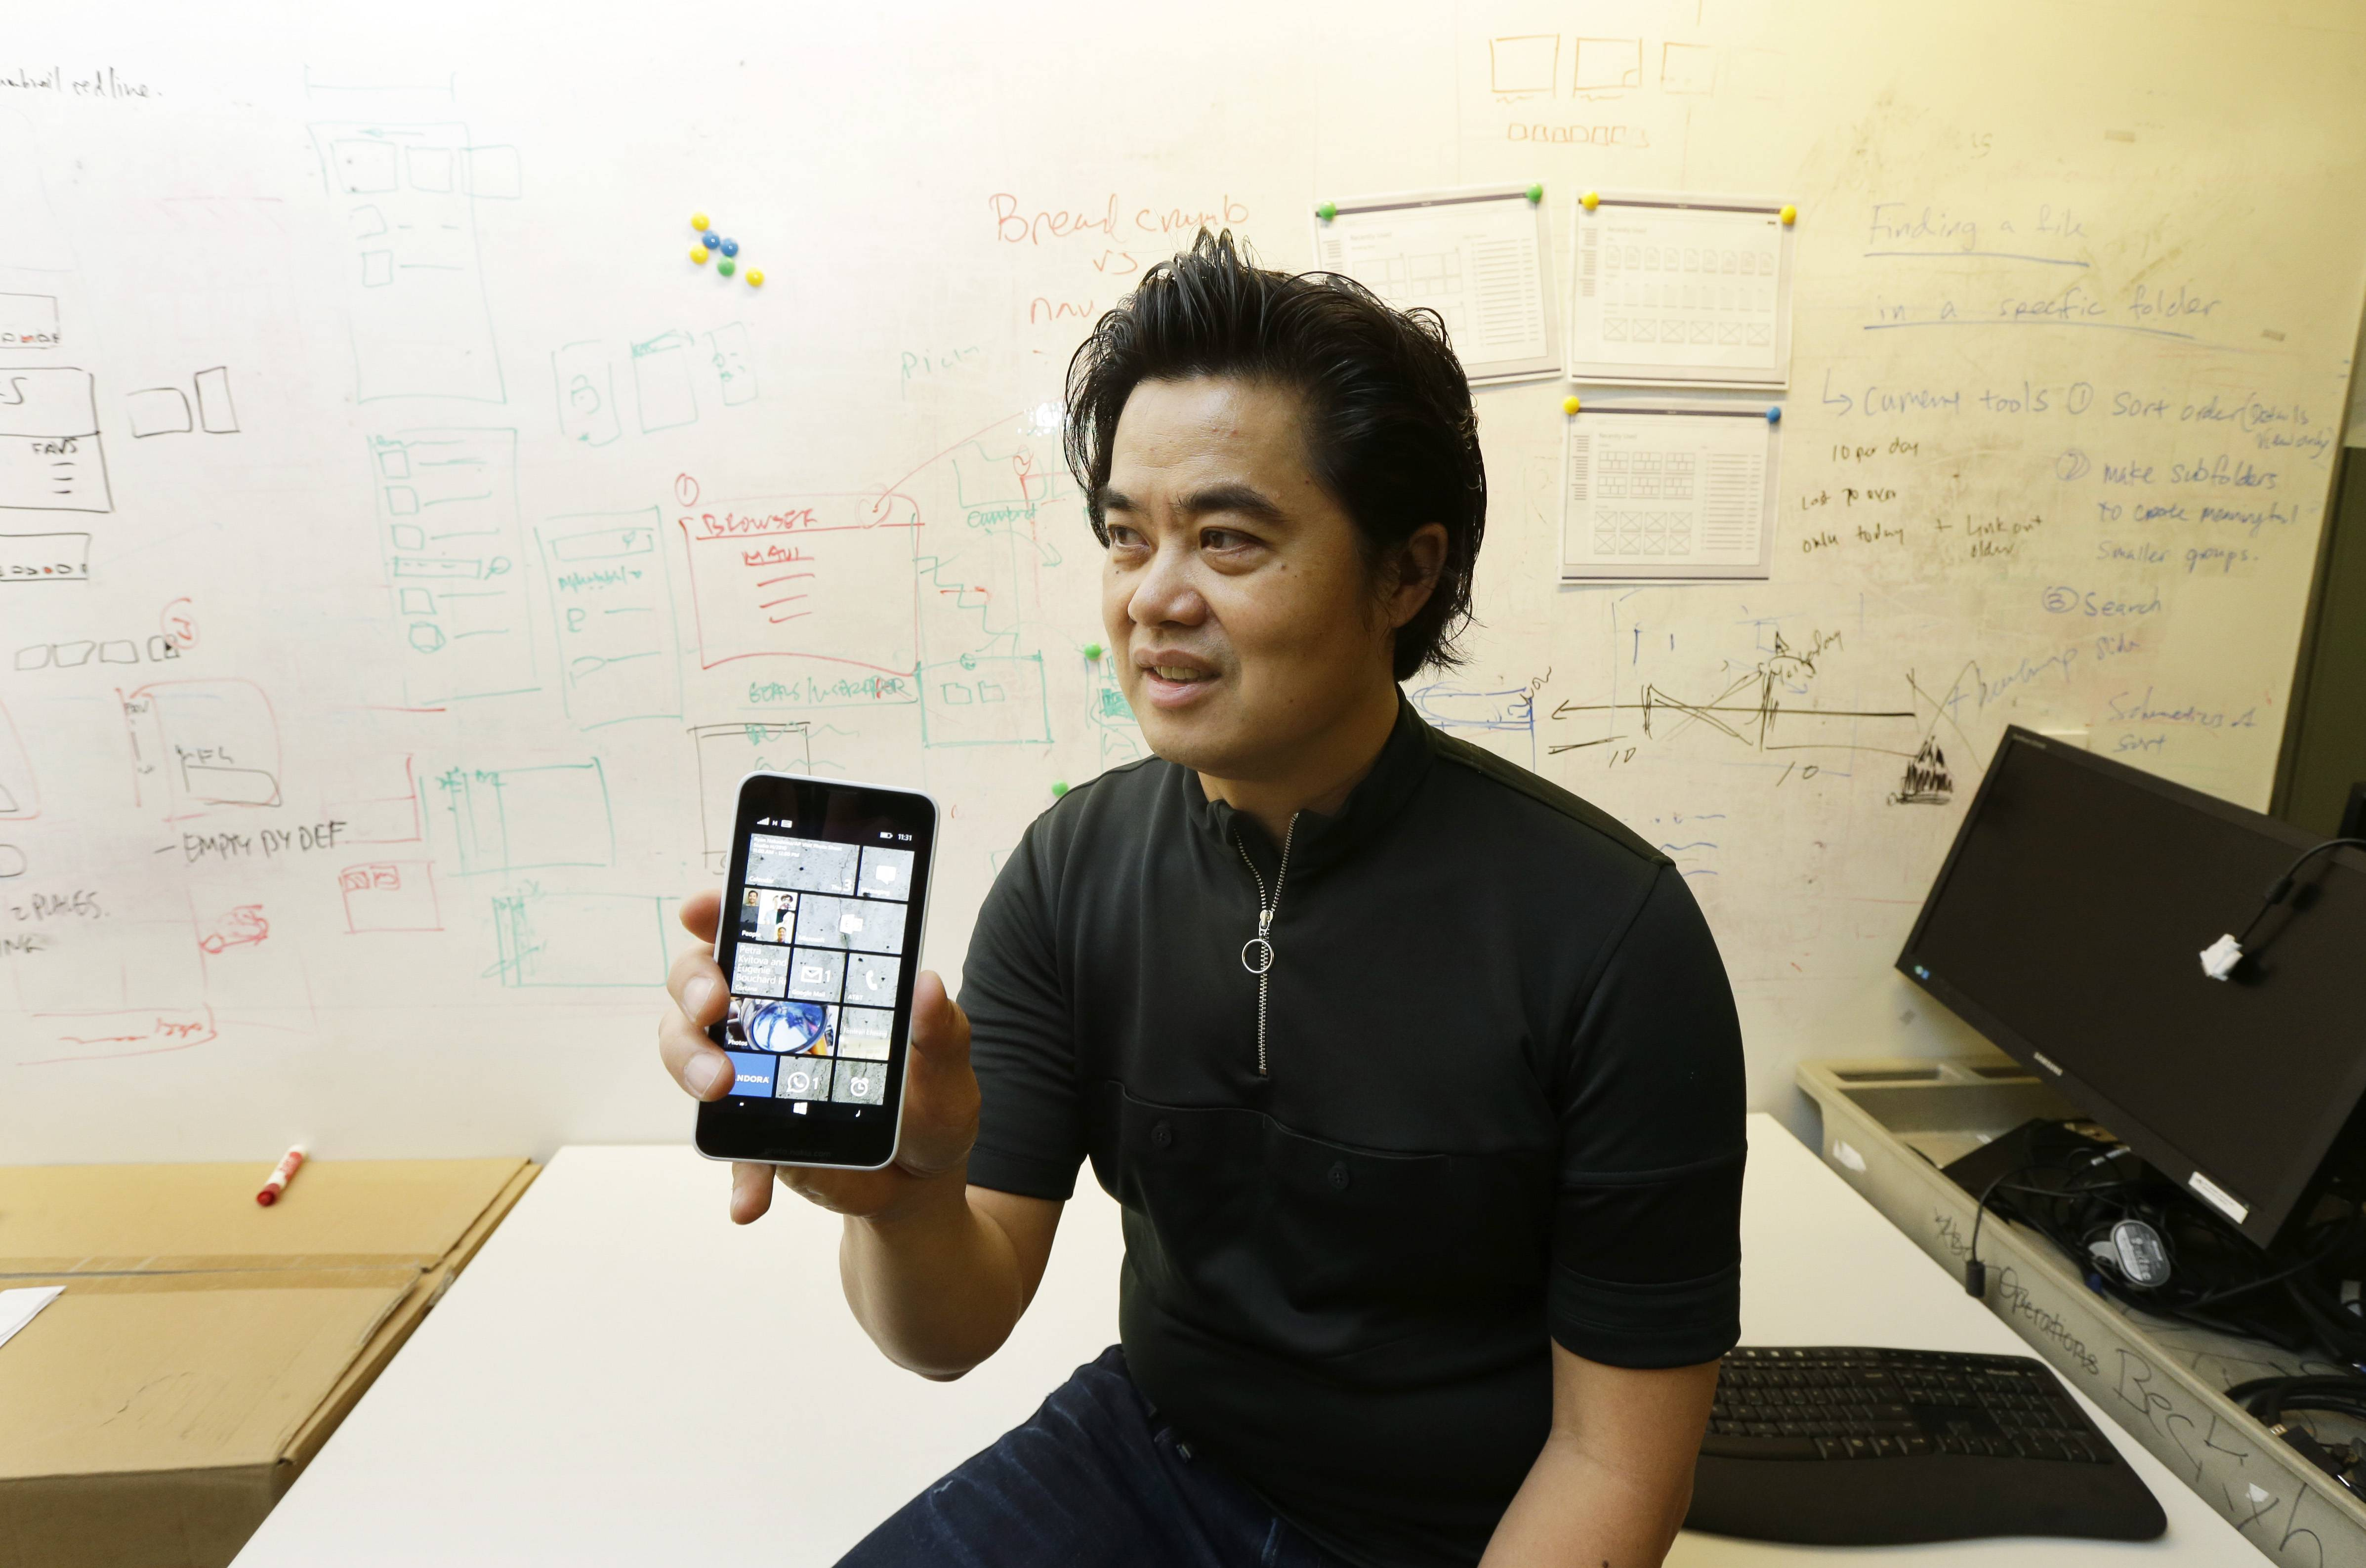 "Albert Shum, who heads interaction design across a range of Microsoft products including personal computer operating systems, Xbox game consoles, and phones, poses with a Windows phone in front of a whiteboard used to brainstorm ideas, at the Windows Design Studio in Redmond, Wash. A former designer for shoemaker Nike, Shum was part of the team that revolutionized the Windows Phone design to feature the boxy, so-called ""live tiles"" that are central to the touch-based interface in Windows 8."